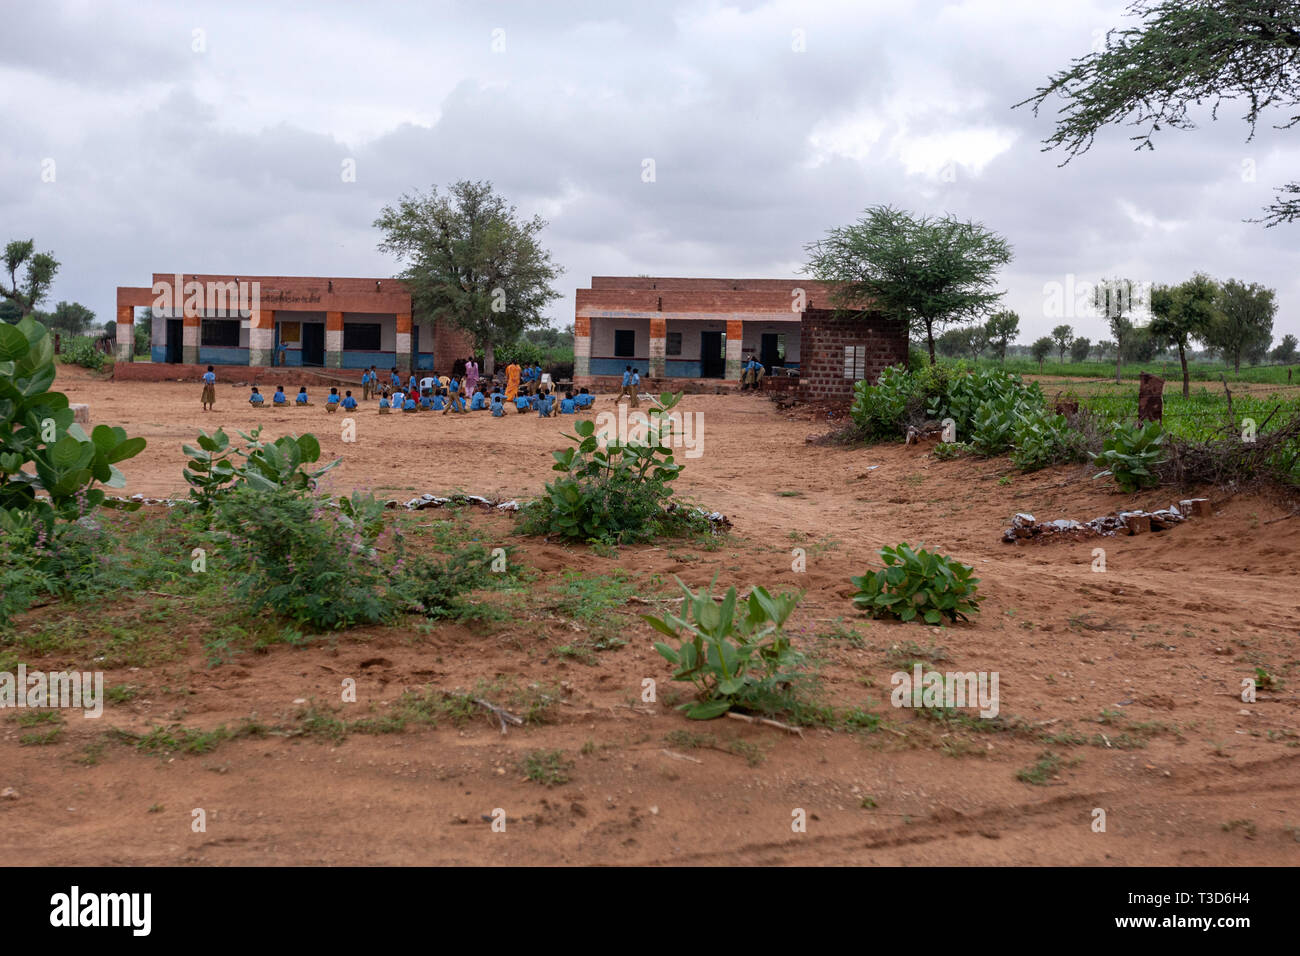 school-boys-and-girls-in-a-rural-school-